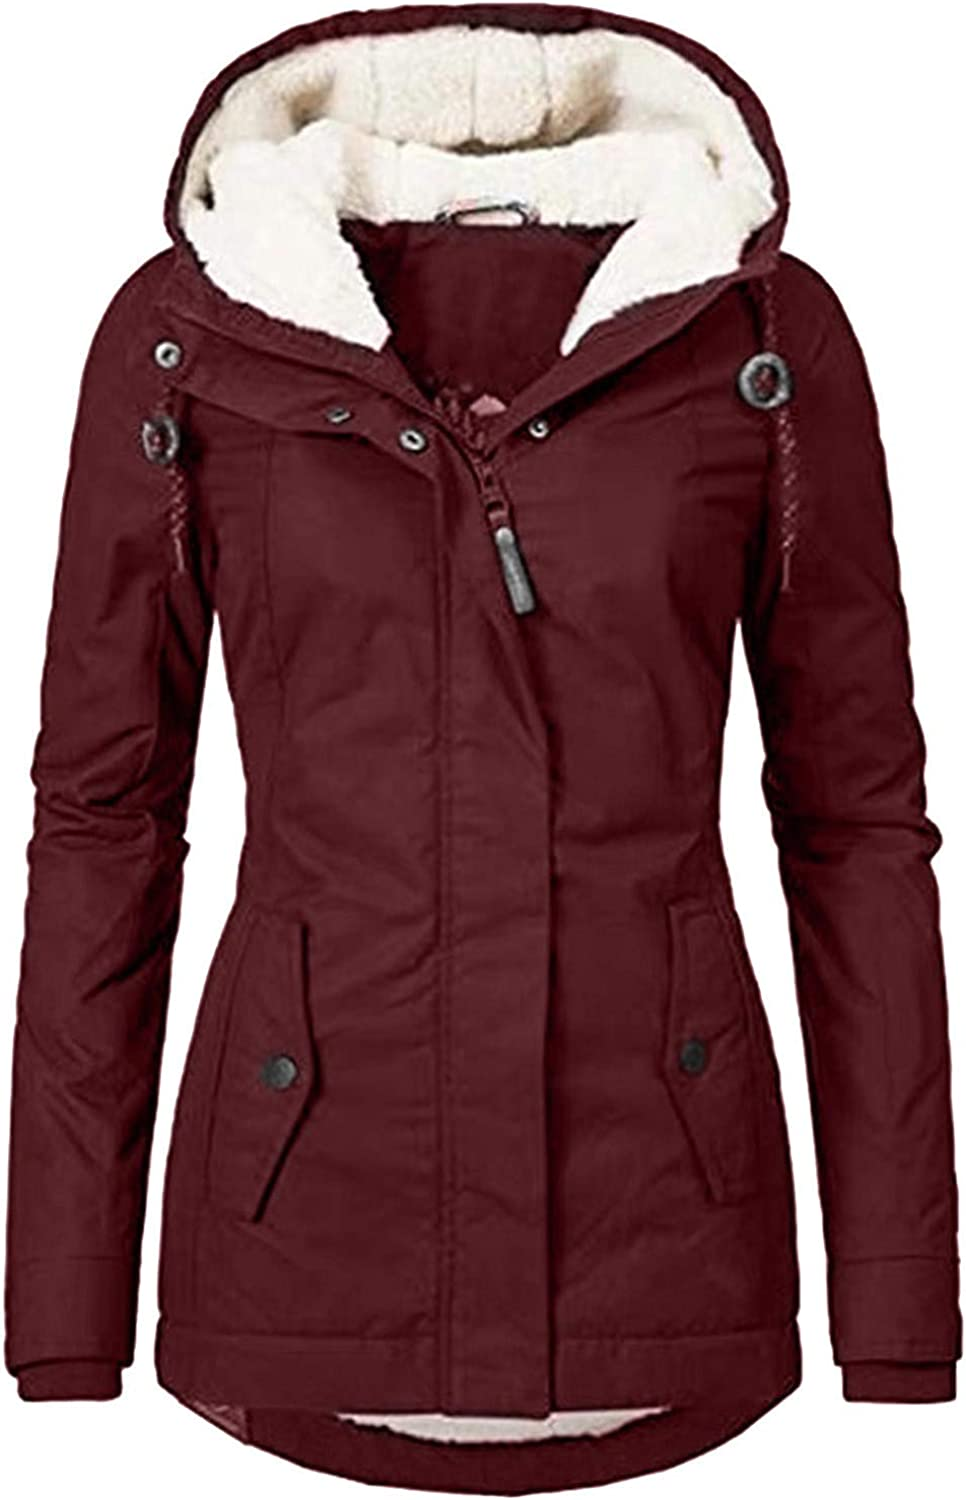 Cardigo Oversized Winter Coats for Womens Ladies Warm Jacket Outwear Fur Lined Trench Winter Hooded Thick Overcoat